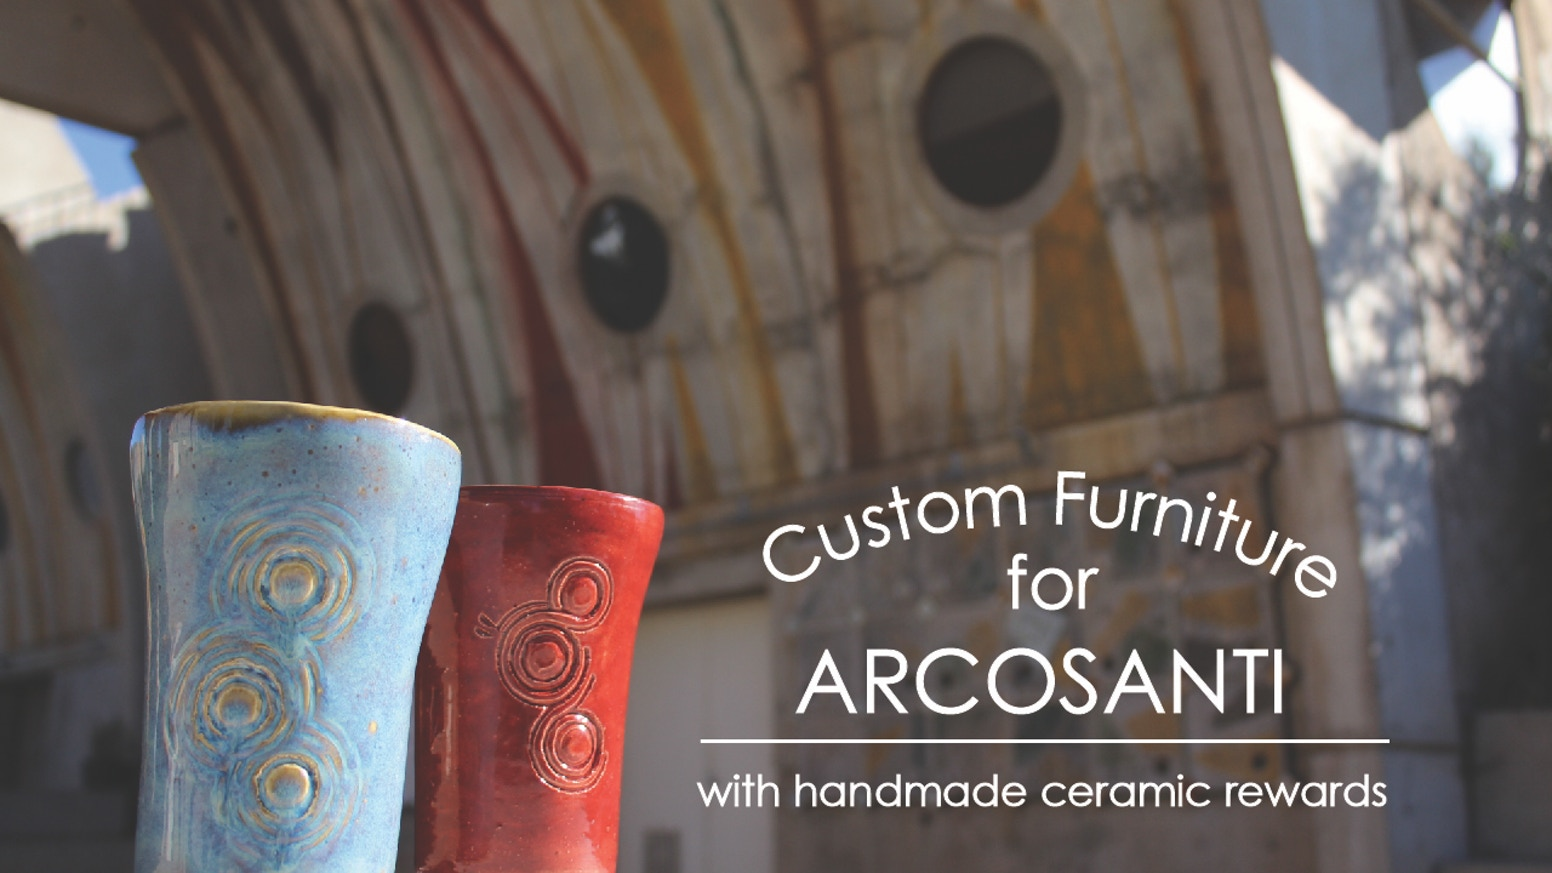 Custom Furniture For The Ever Evolving Community Working To Prototype Arcology At Arcosanti